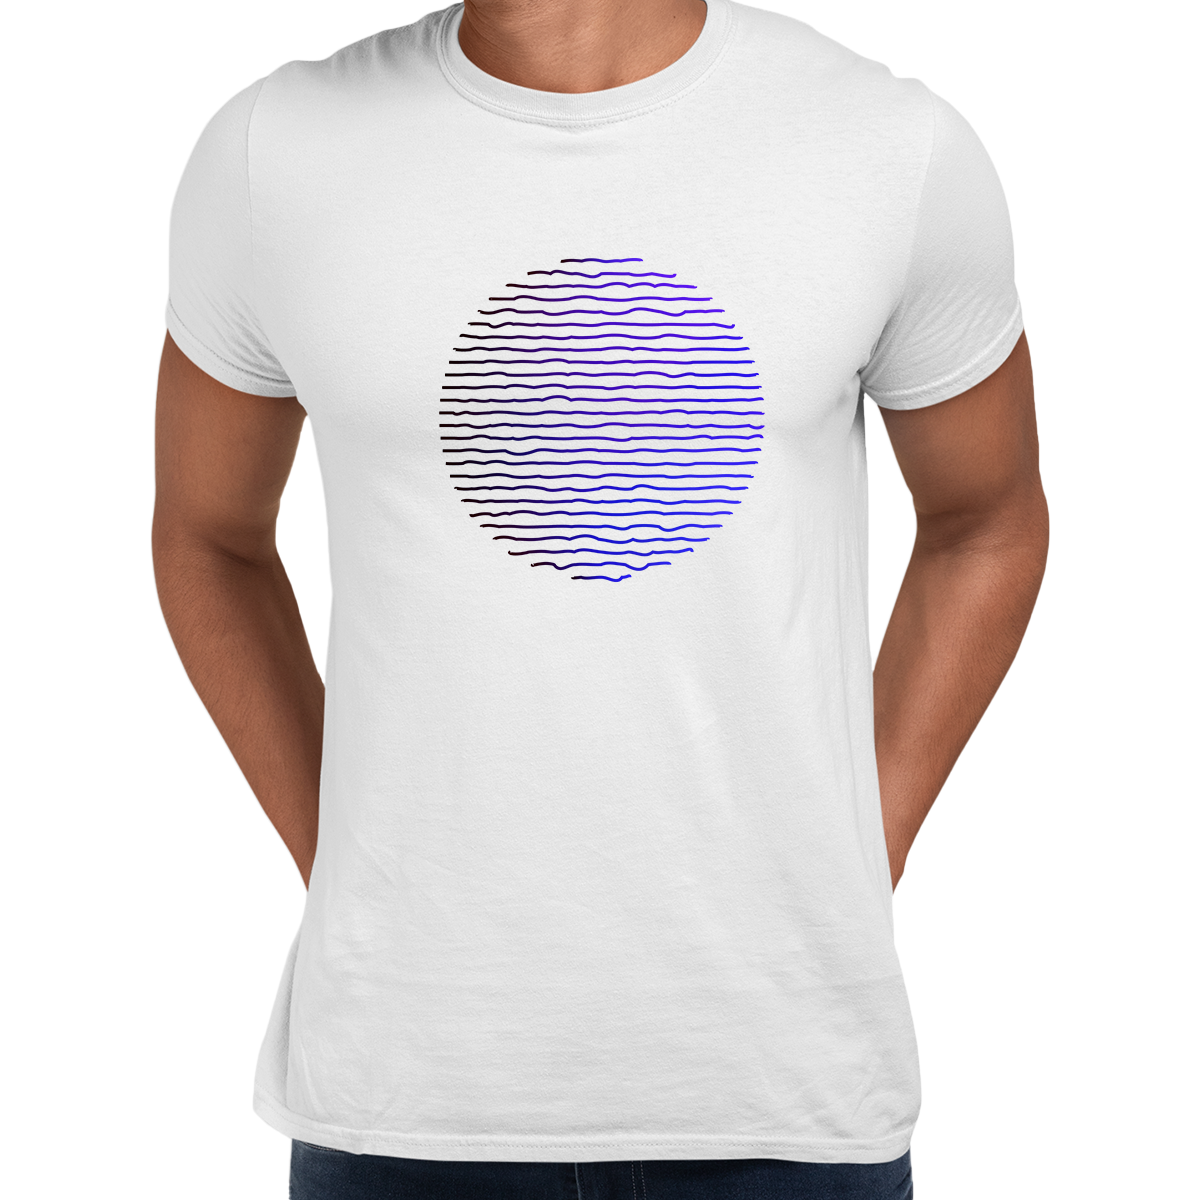 Futuristic Circular Wave Gradient Sphere Liquid 3D Defect Unisex Male White T-shirt